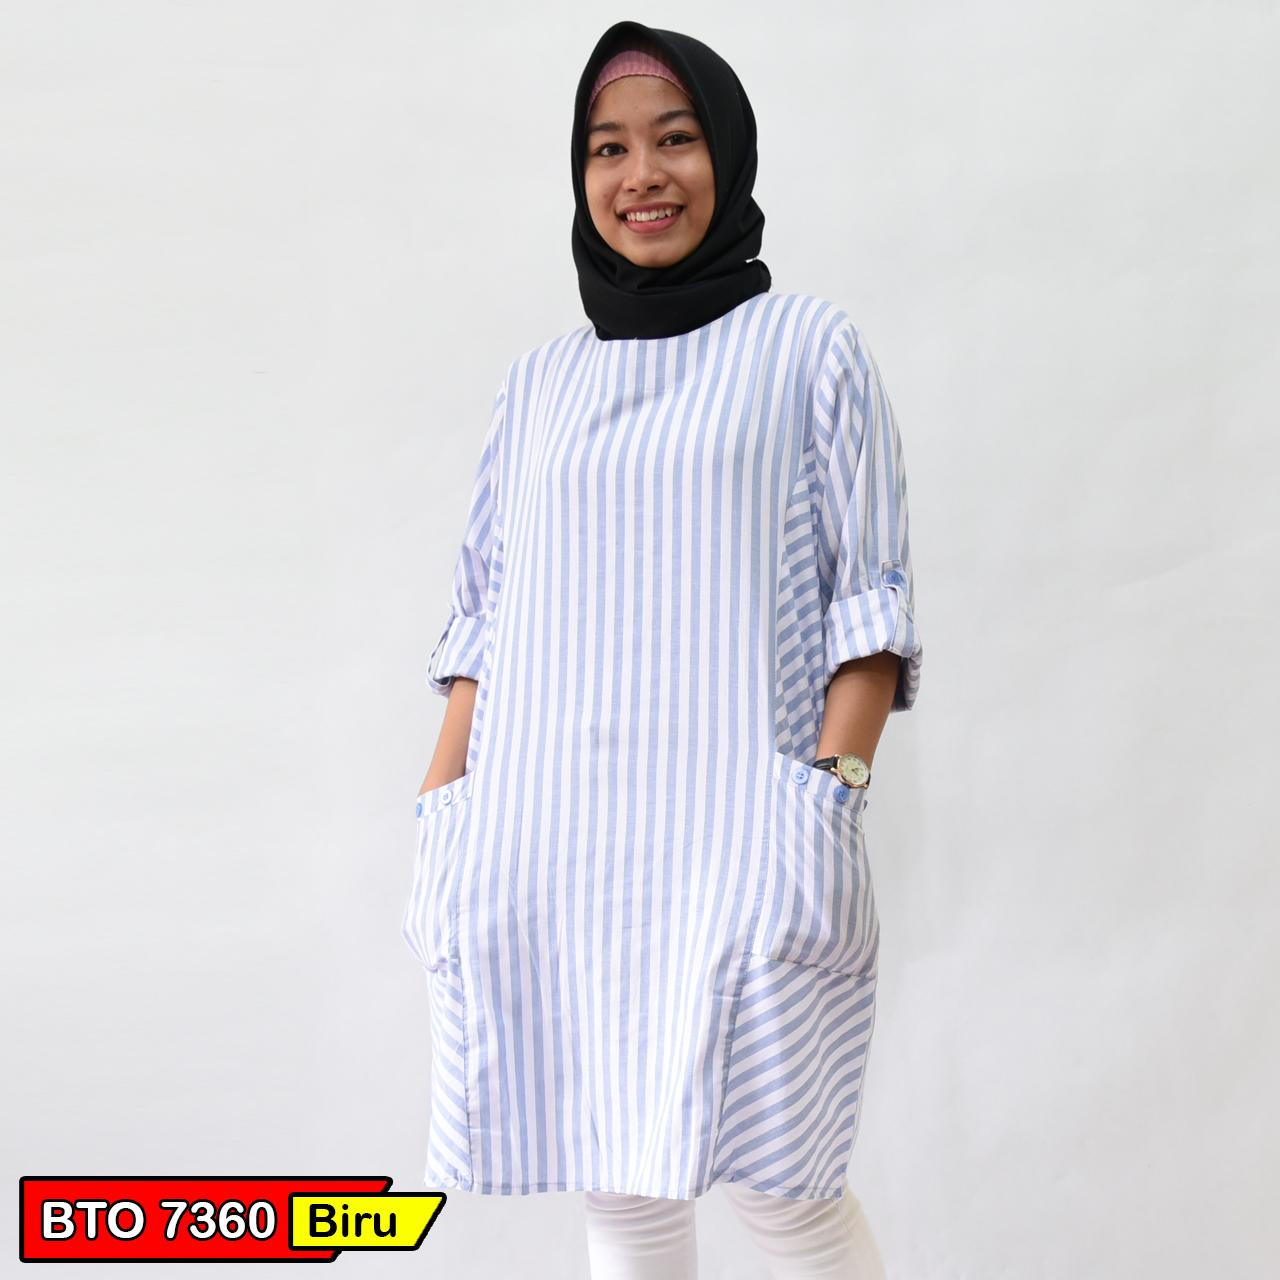 TUNIK Fashion Wanita - BLOUSE Atasan Muslim Bahan Katun Best Seller Ori Tokodenay Mode BTO 7360